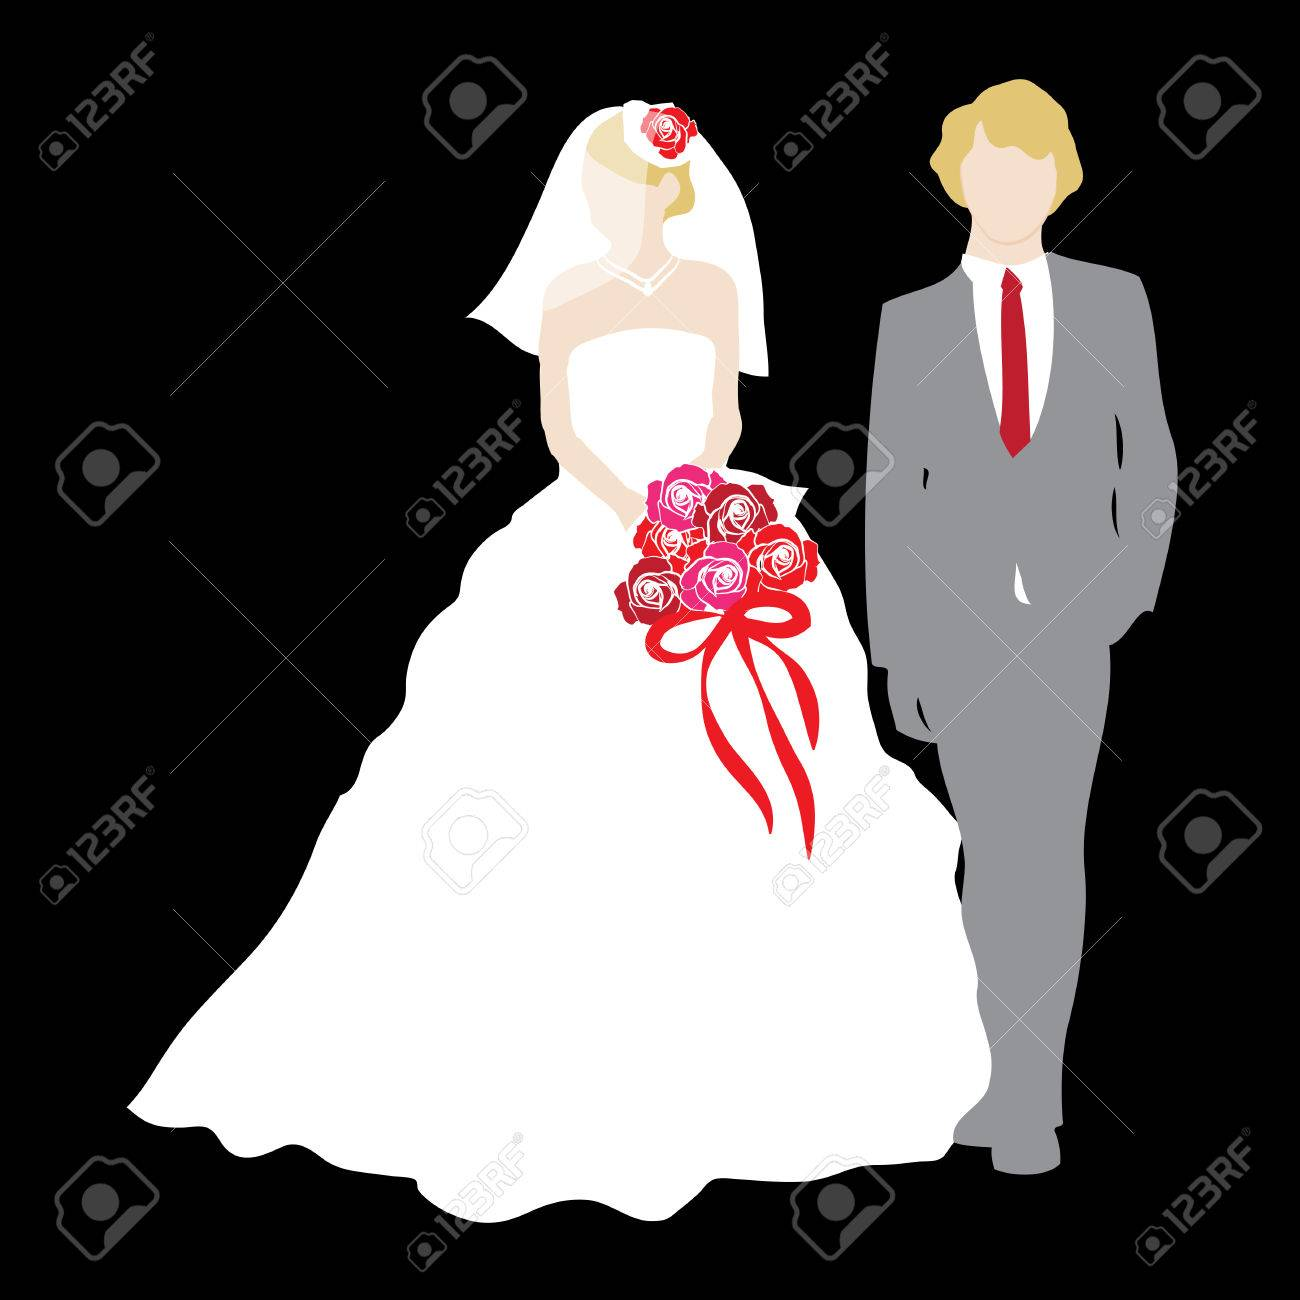 Just Married Wedding Couple - 22455906